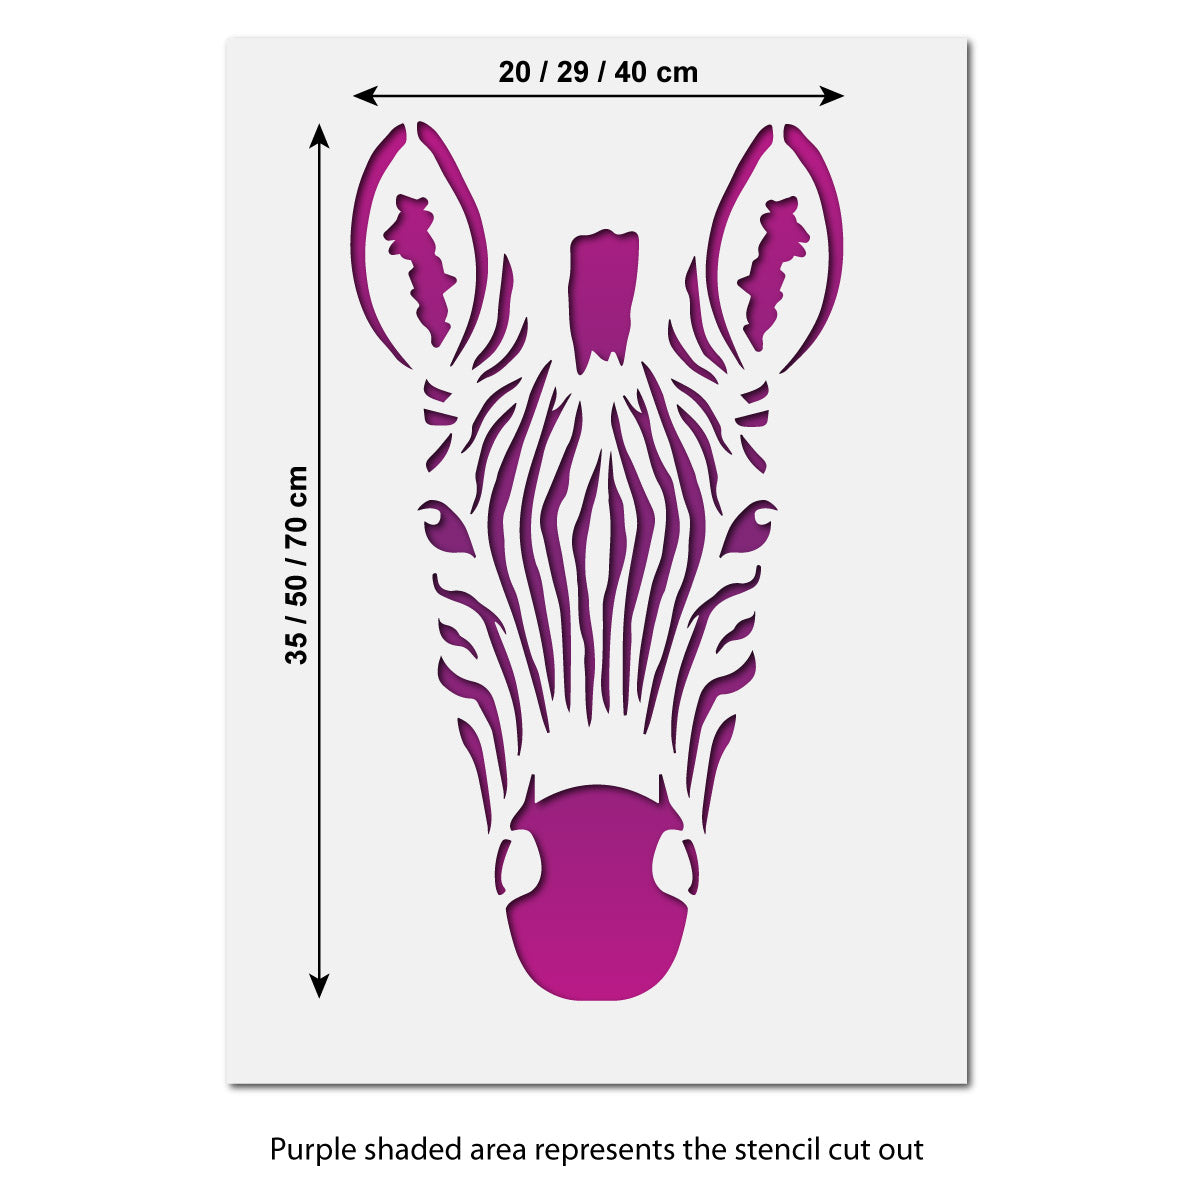 CraftStar Zebra Head Wall Stencil - Size Guide